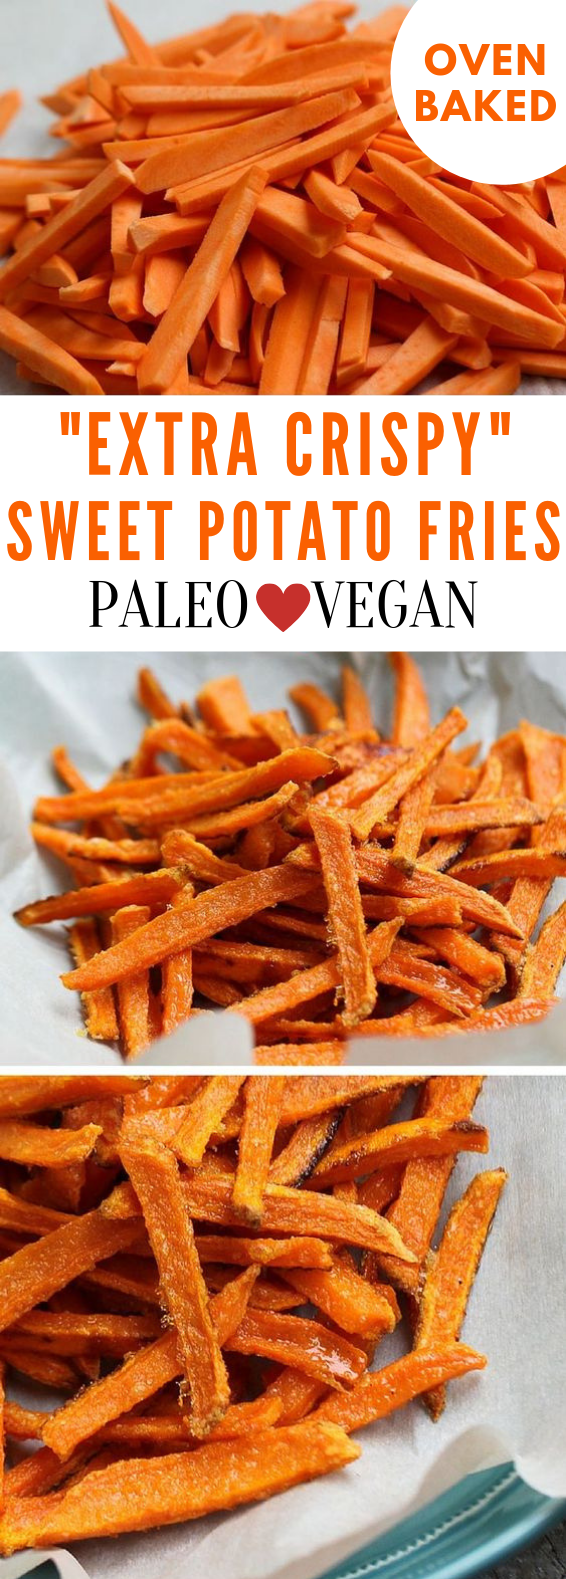 Crispy Oven Baked Sweet Potato Fries #OvenBaked #Potato